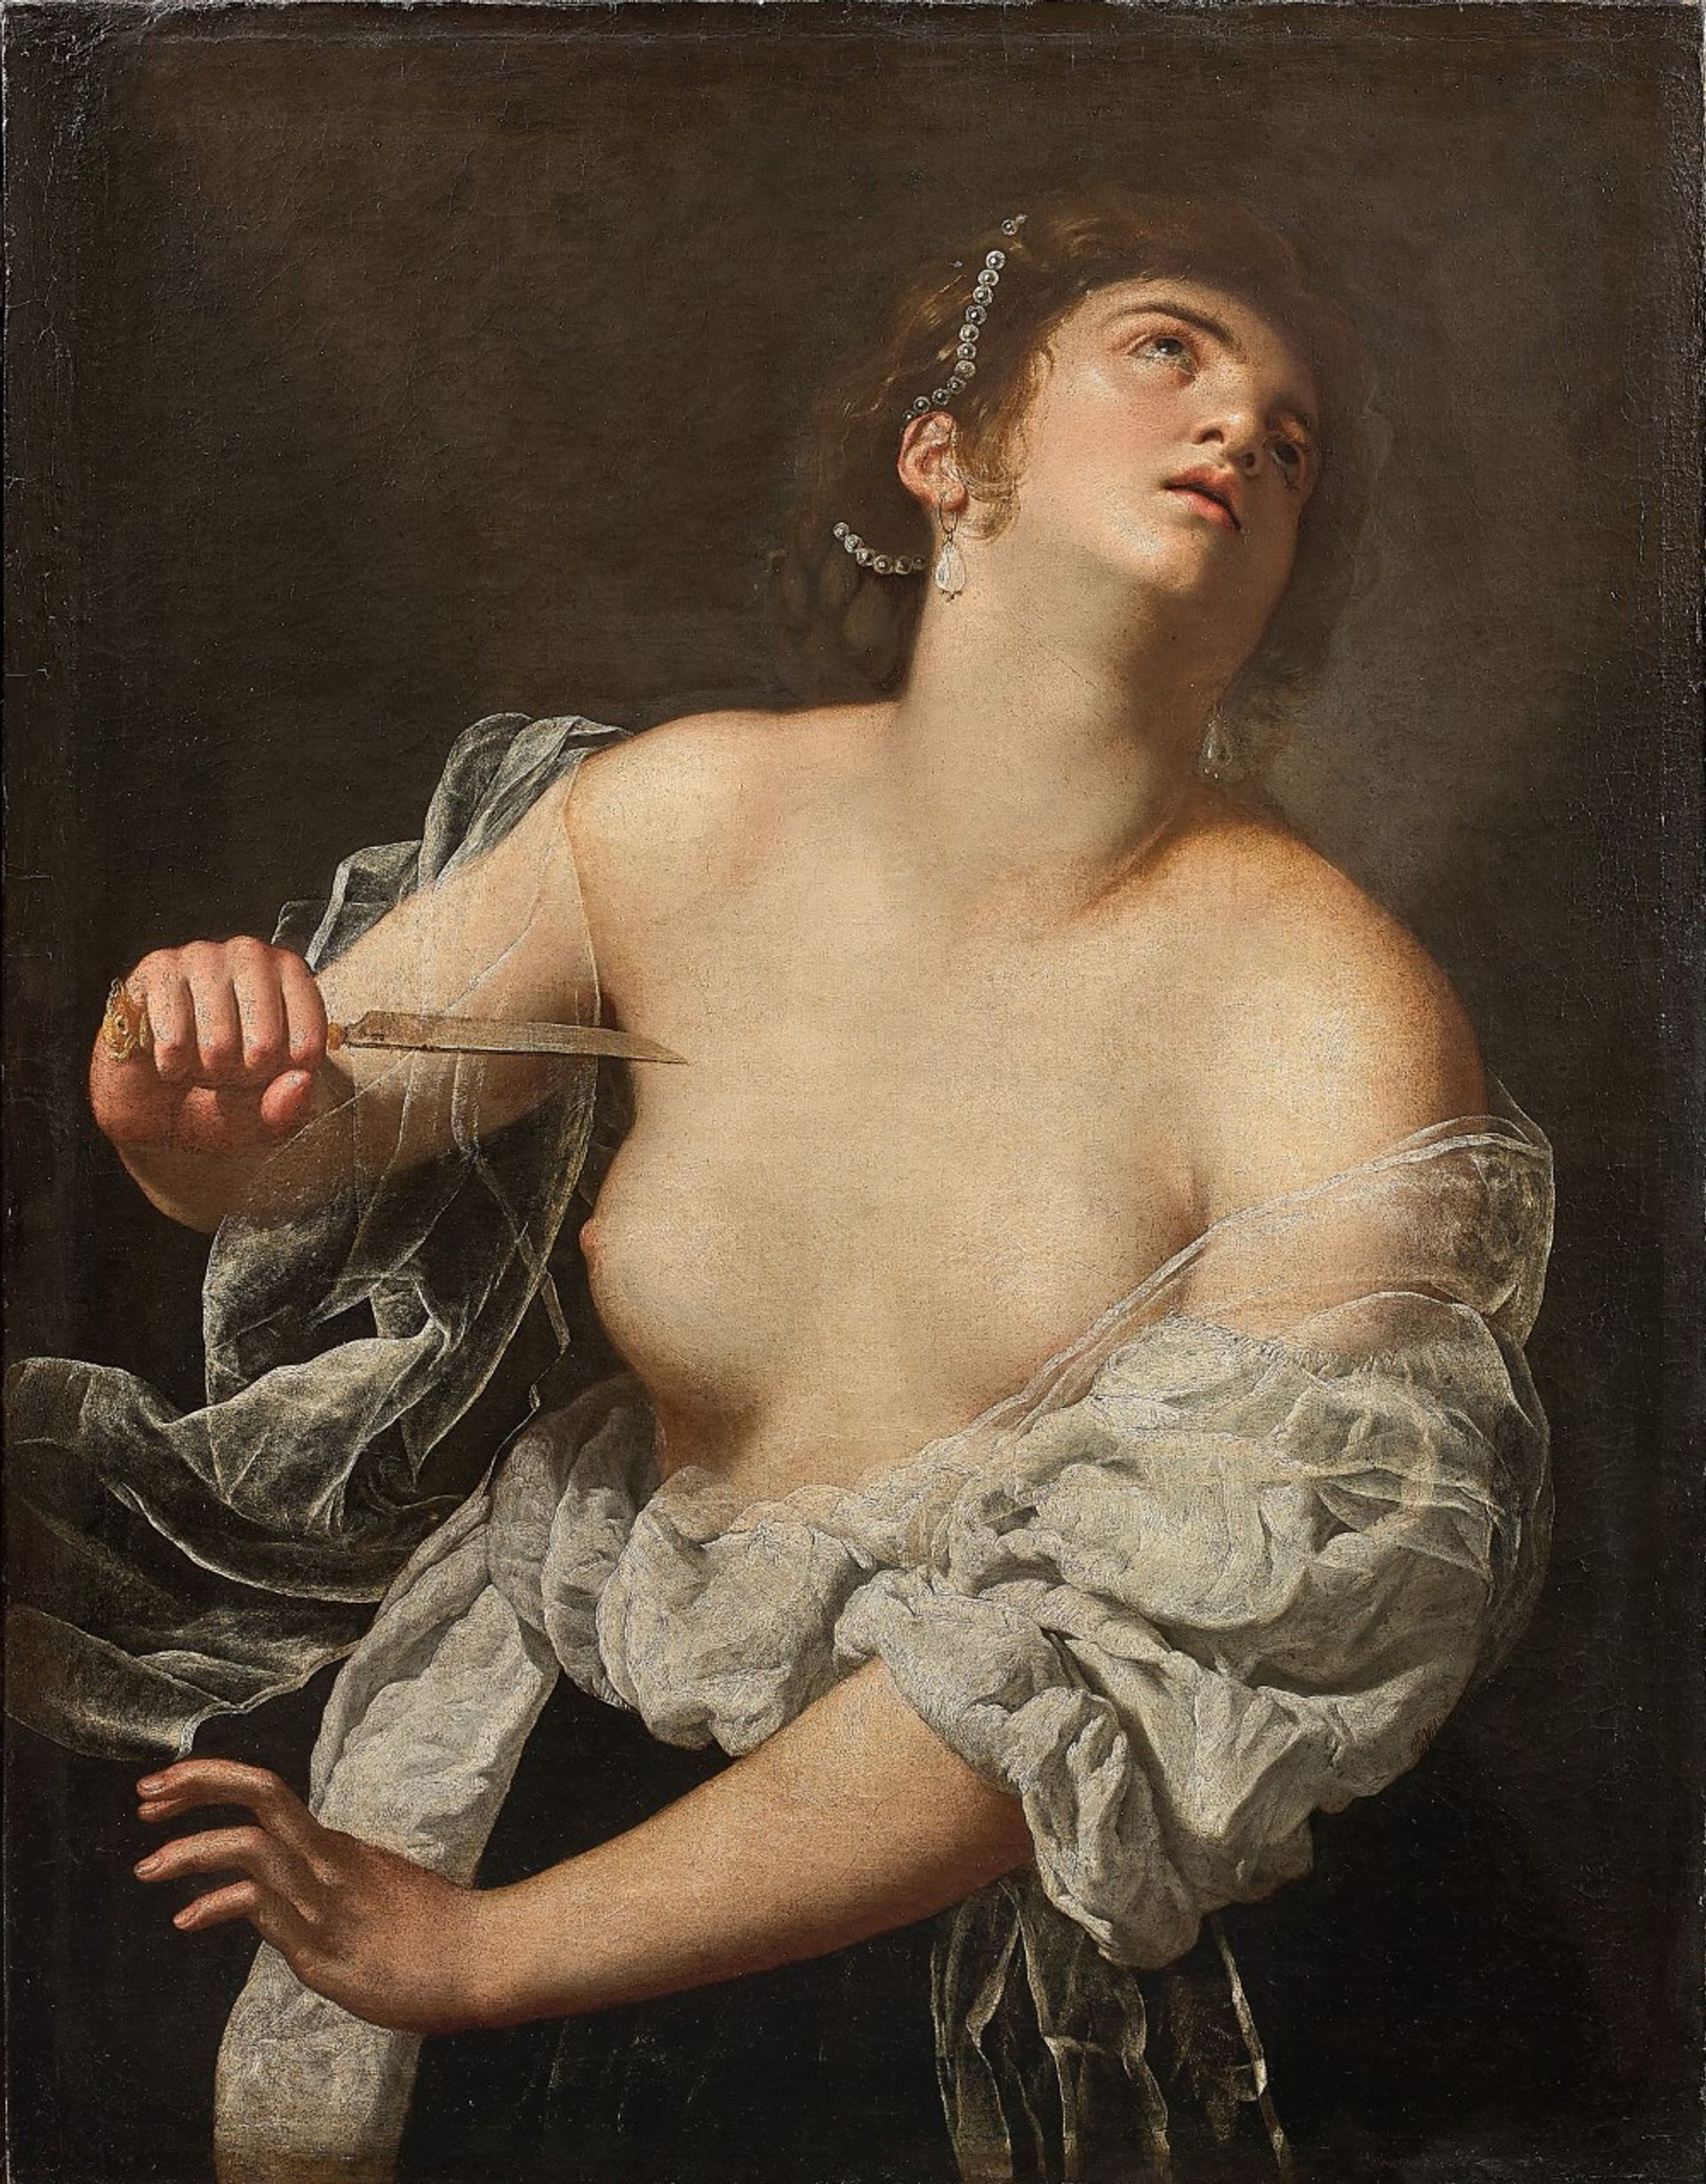 The Parisian auction house Artcurial says this painting is by the 17th-century artist Artemisia Gentileschi Courtesy of Artcurial